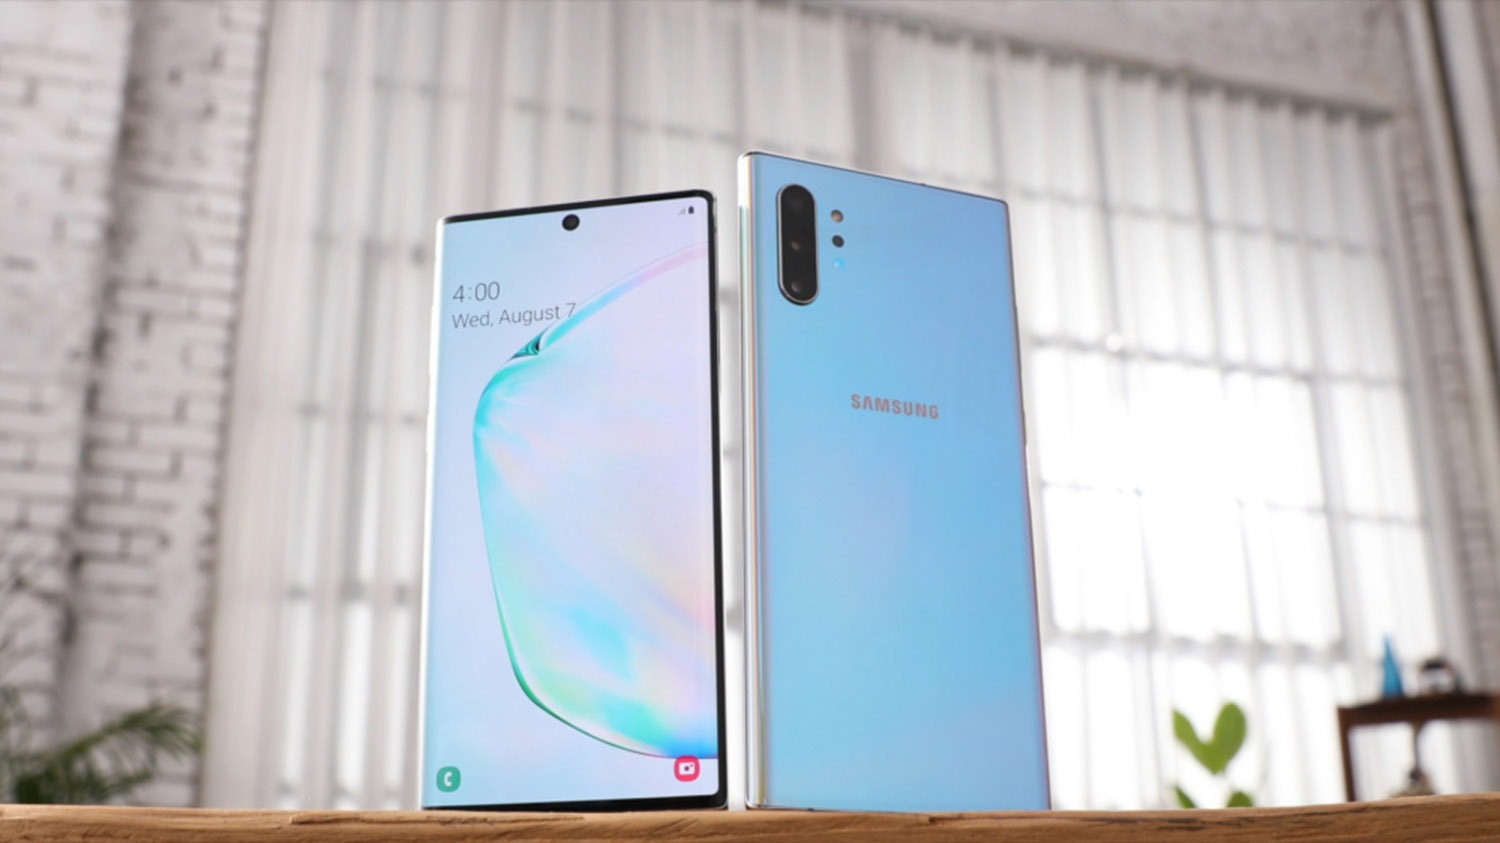 Samsung Galaxy Note 10 Announced: Specs, Features, Price, Release Date